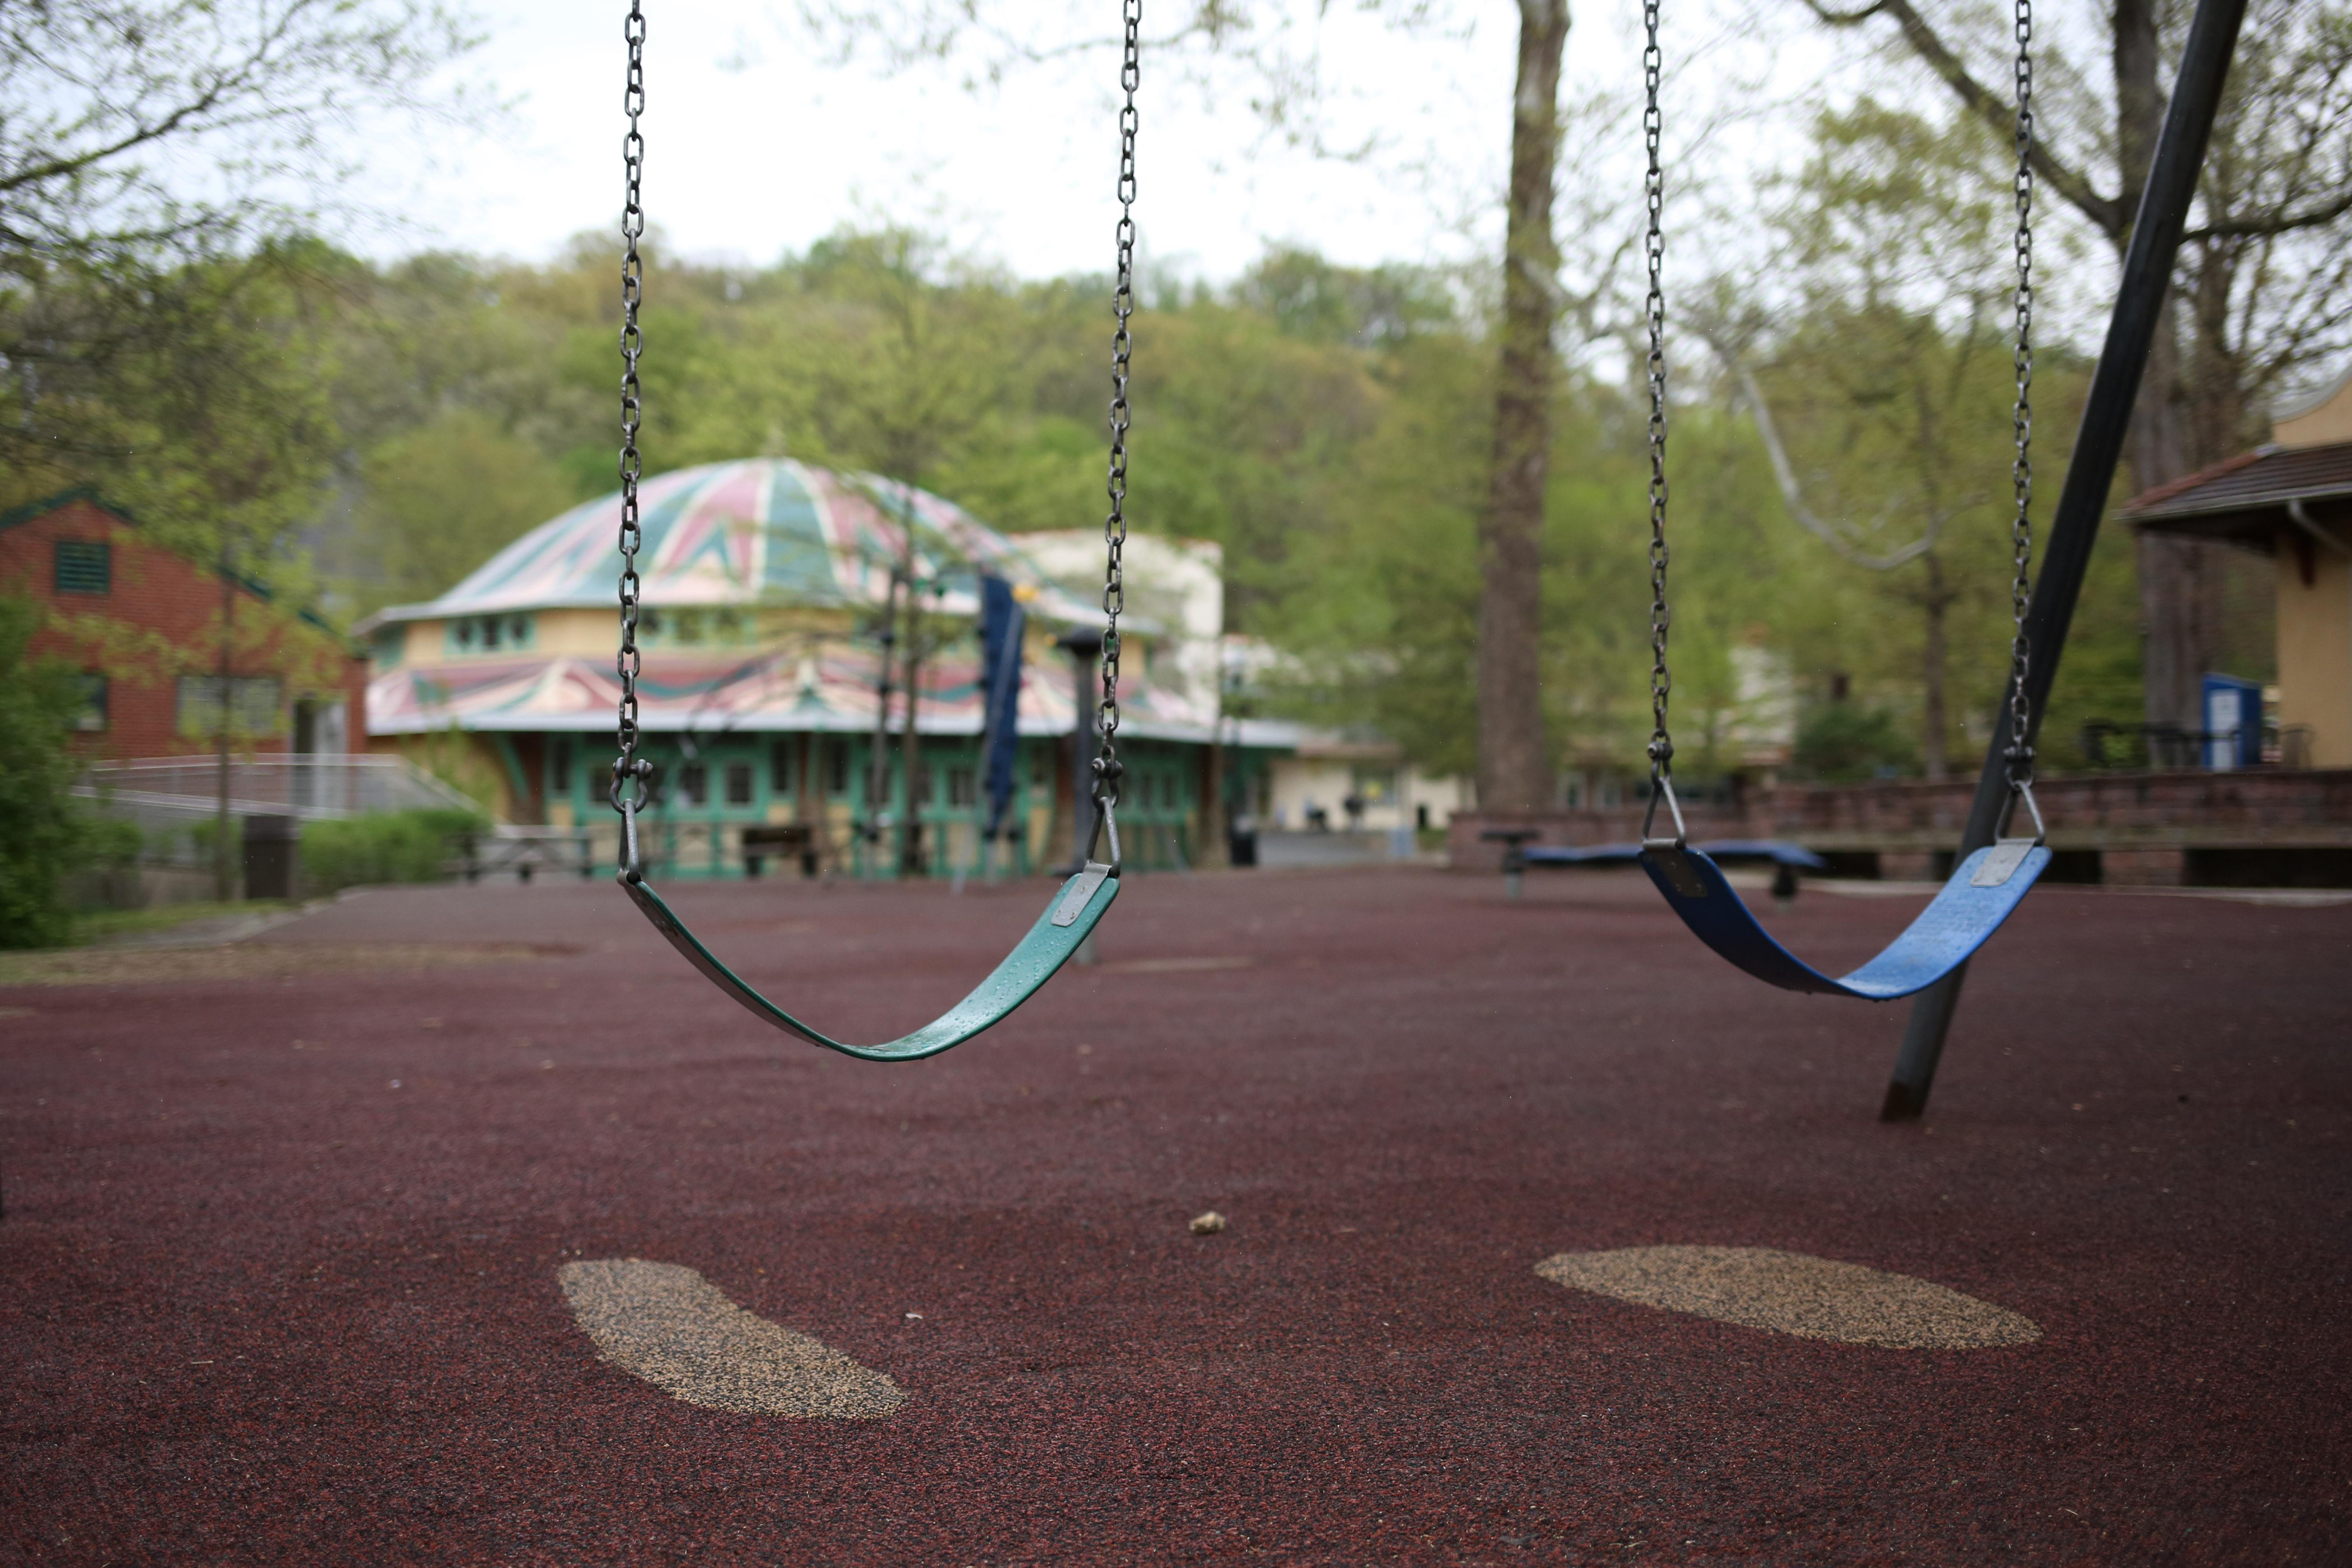 A lot of locals have fond memories of Glen Echo Park, the amusement park-turned-national park in Glen Echo, Maryland. However, before the famous carousel opens up for spring and summer, Glen Echo Park feels like getting lost in time. (Amanda Andrade-Rhoades/DC Refined)